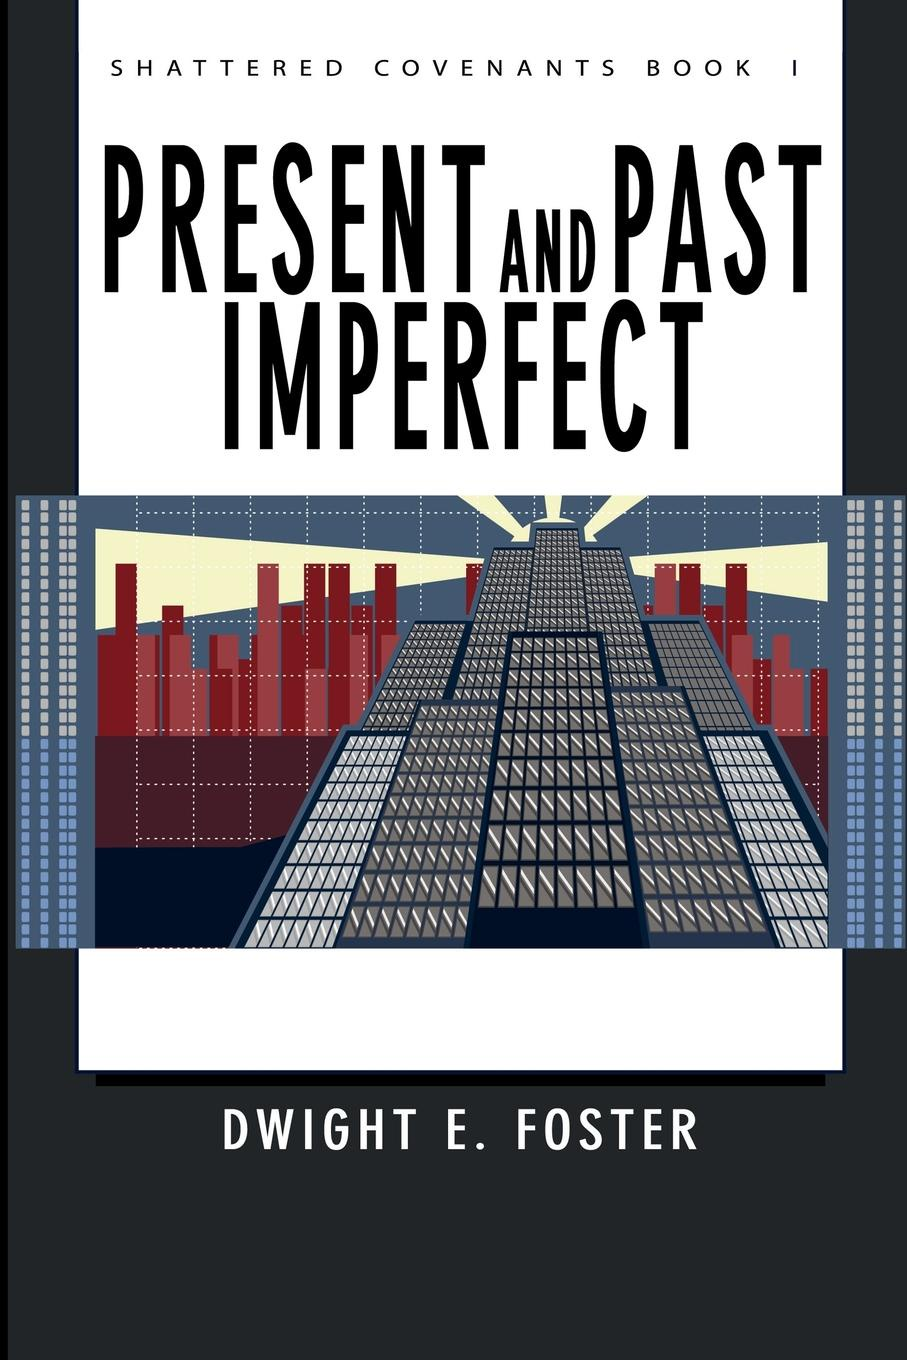 Dwight E. Foster Present and Past Imperfect imperfect philosophy туфли